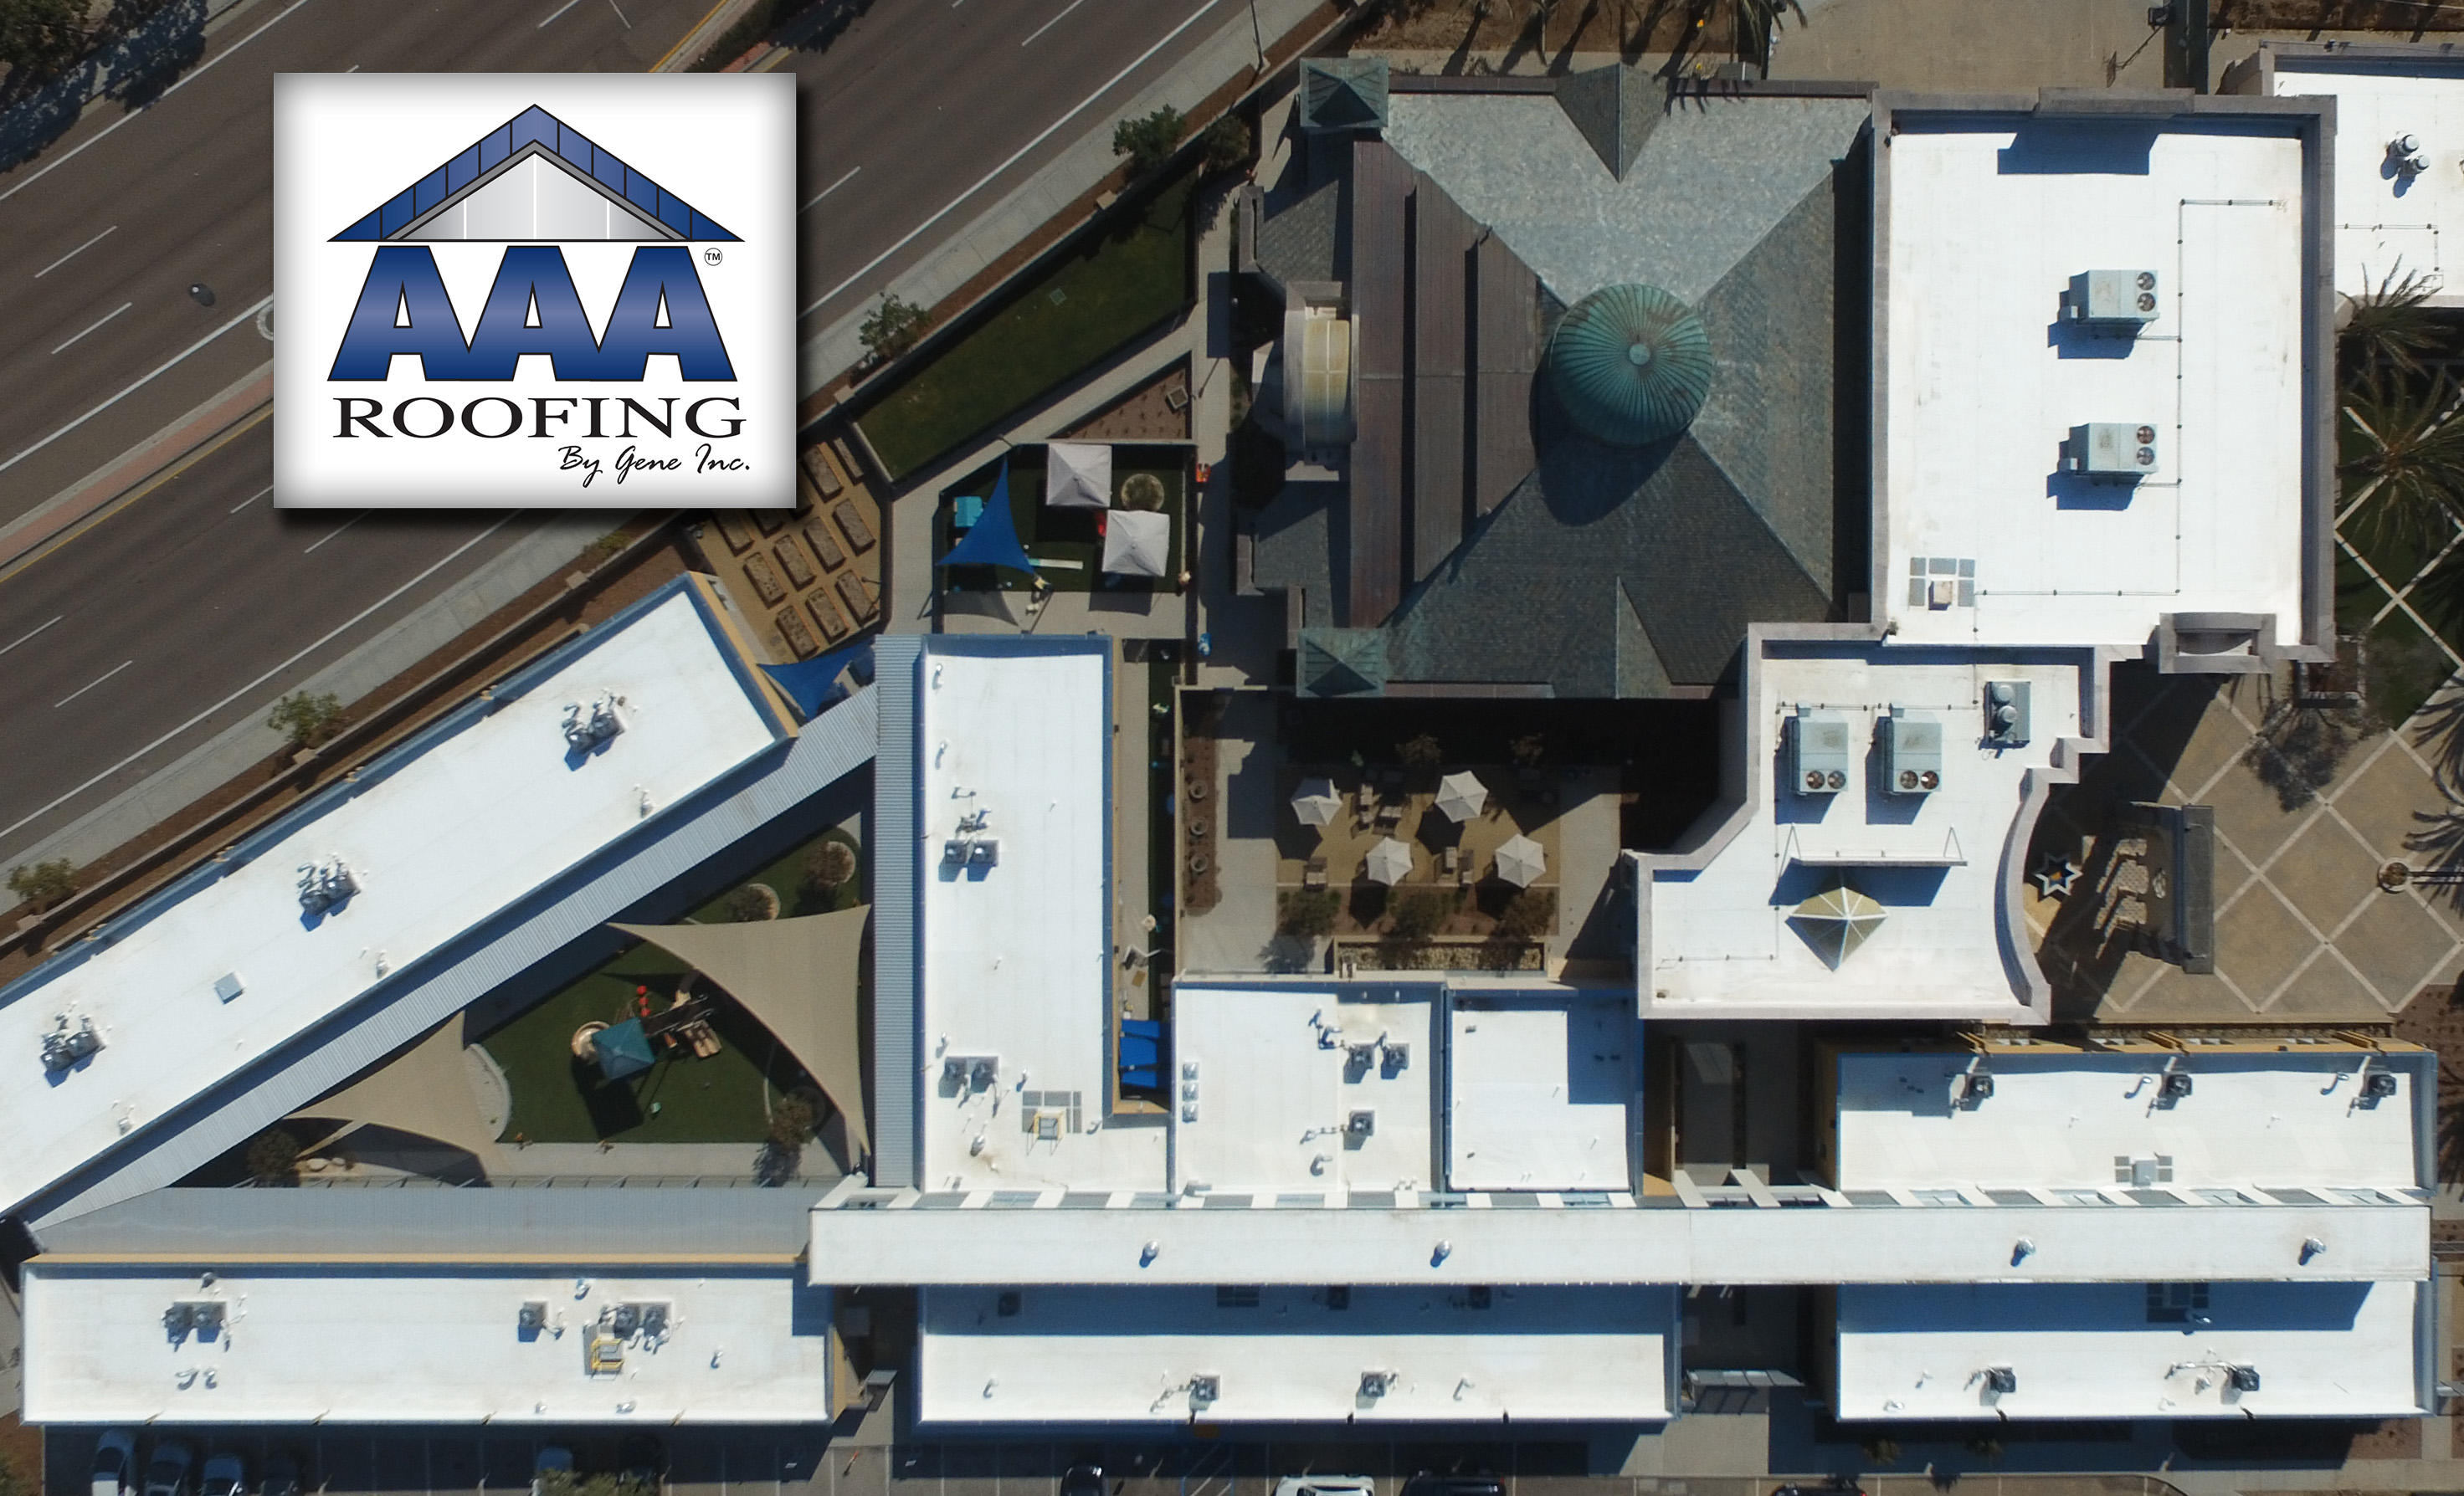 AAA Roofing by Gene image 4